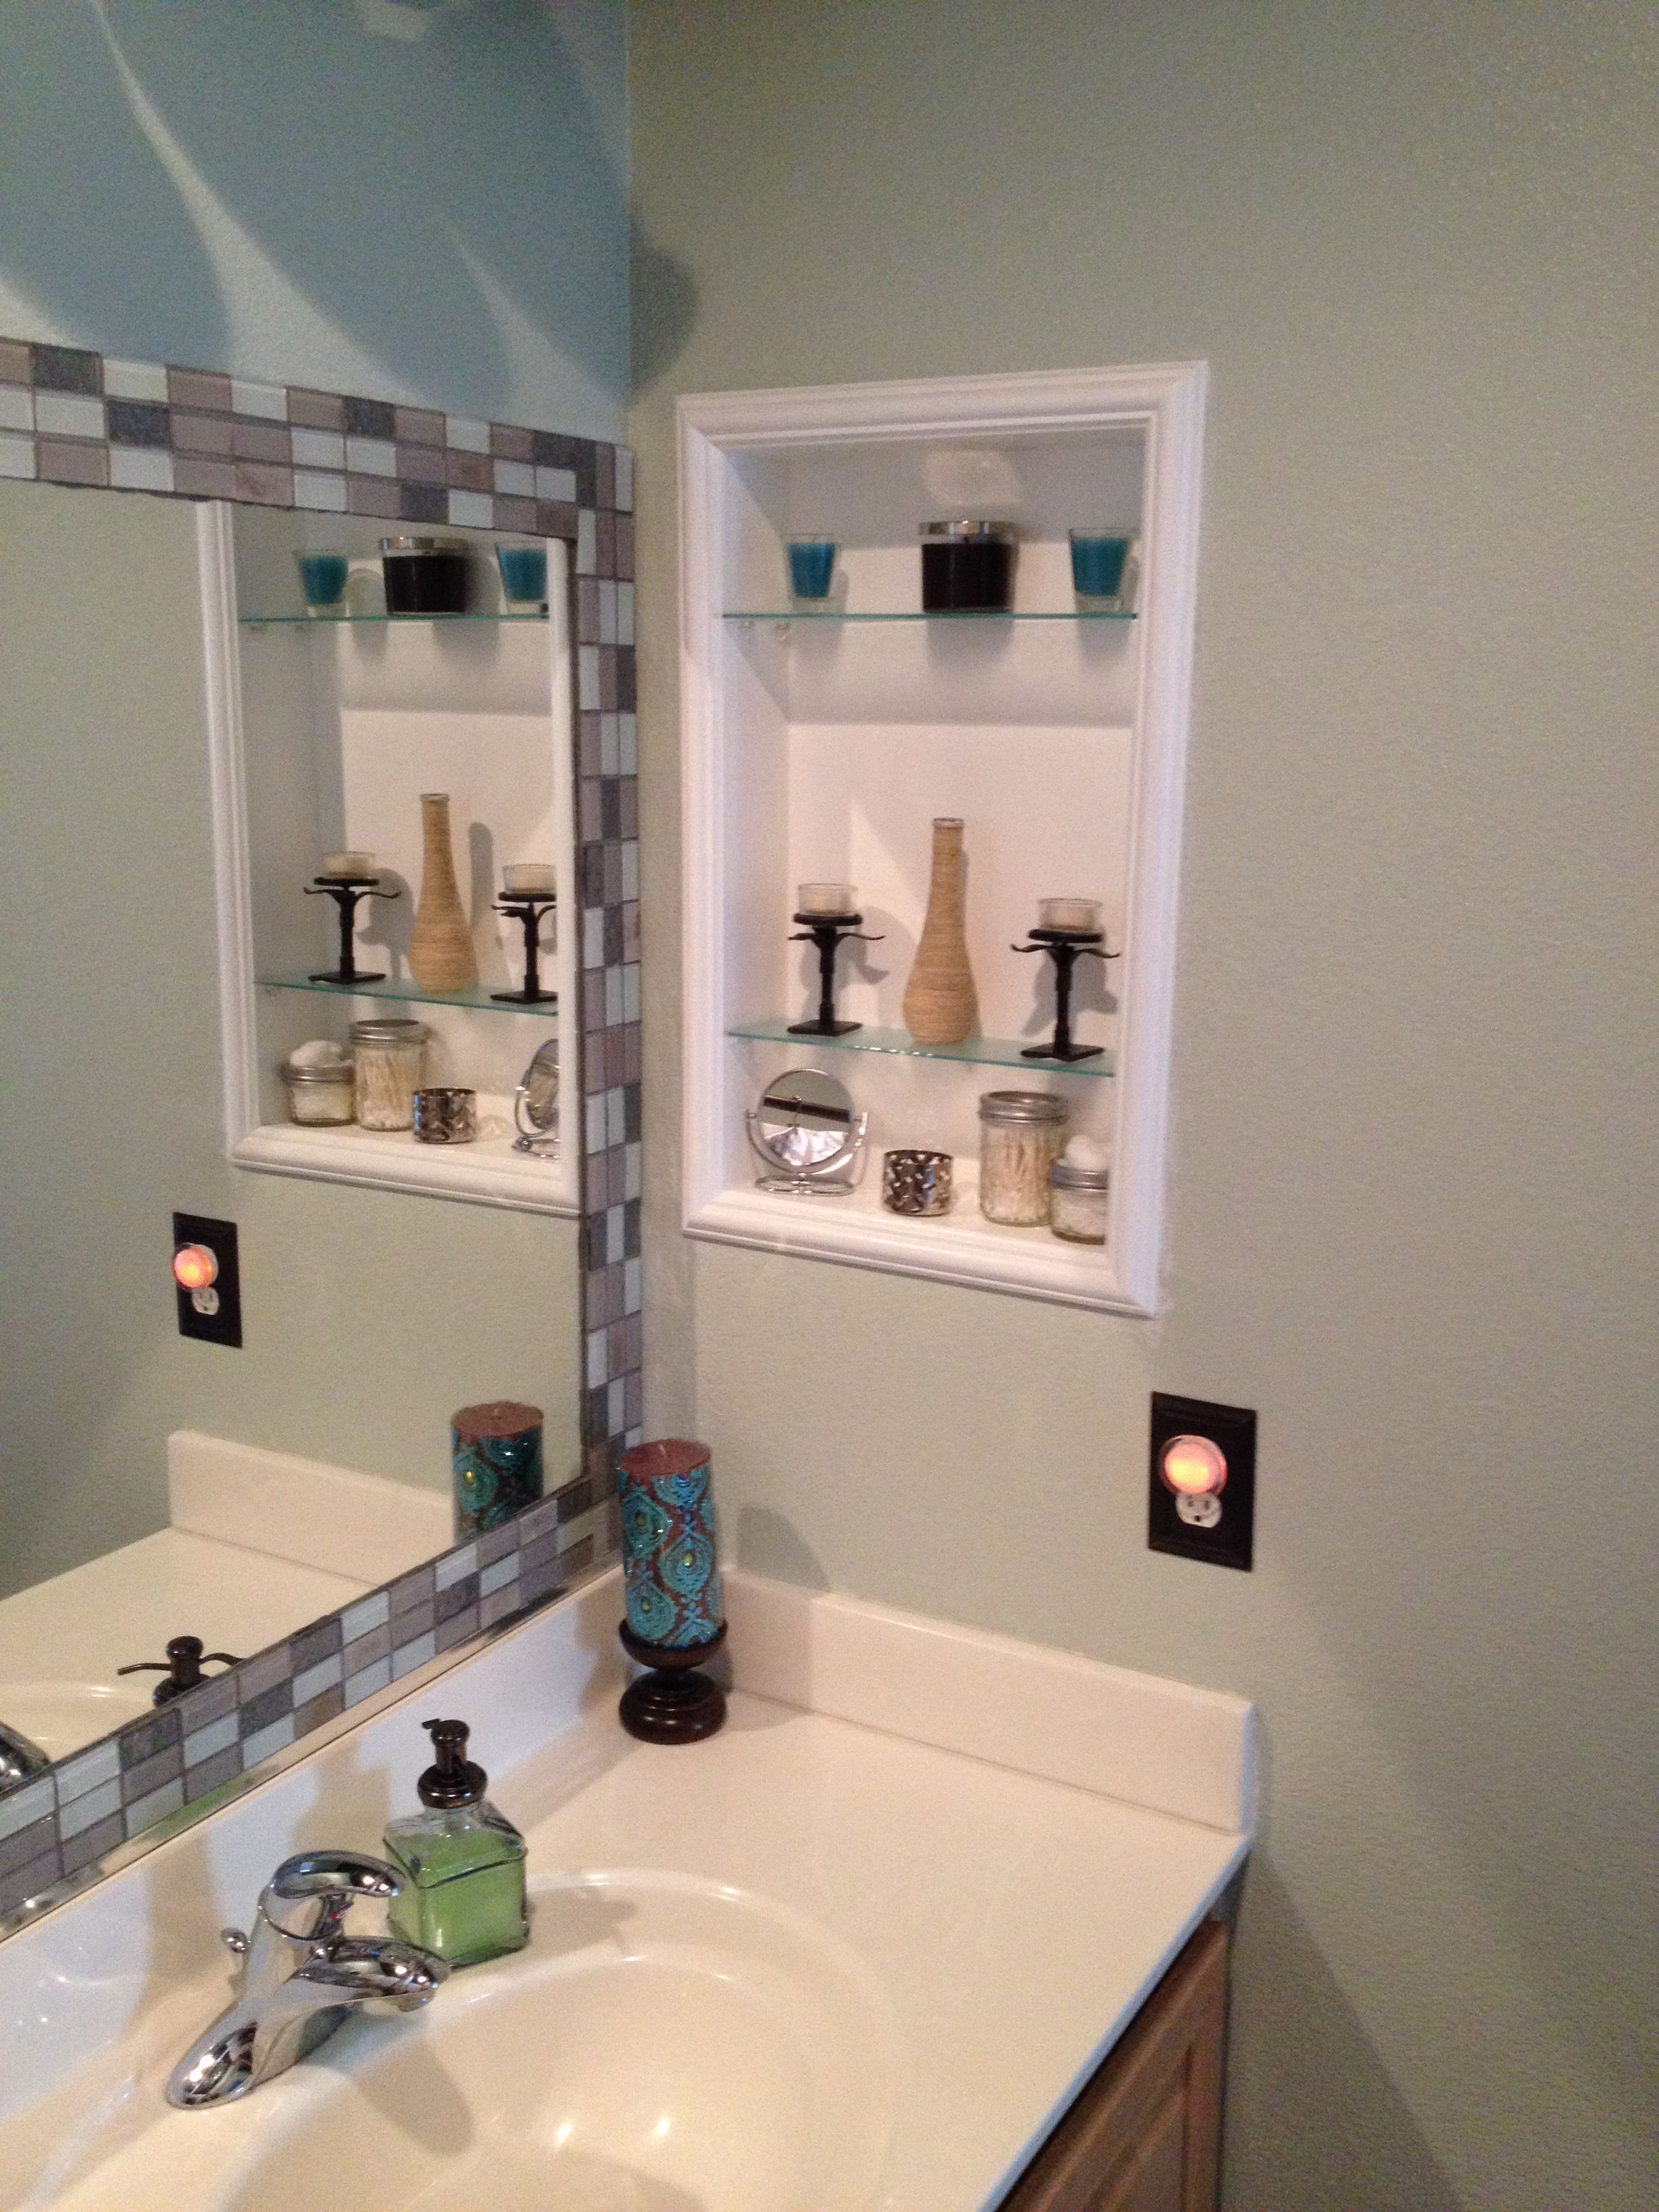 Framed Medicine Cabinet Tile Around Standard Mirror Budget Bathroom Remodel Bathrooms Remodel Bathroom Remodel Cost